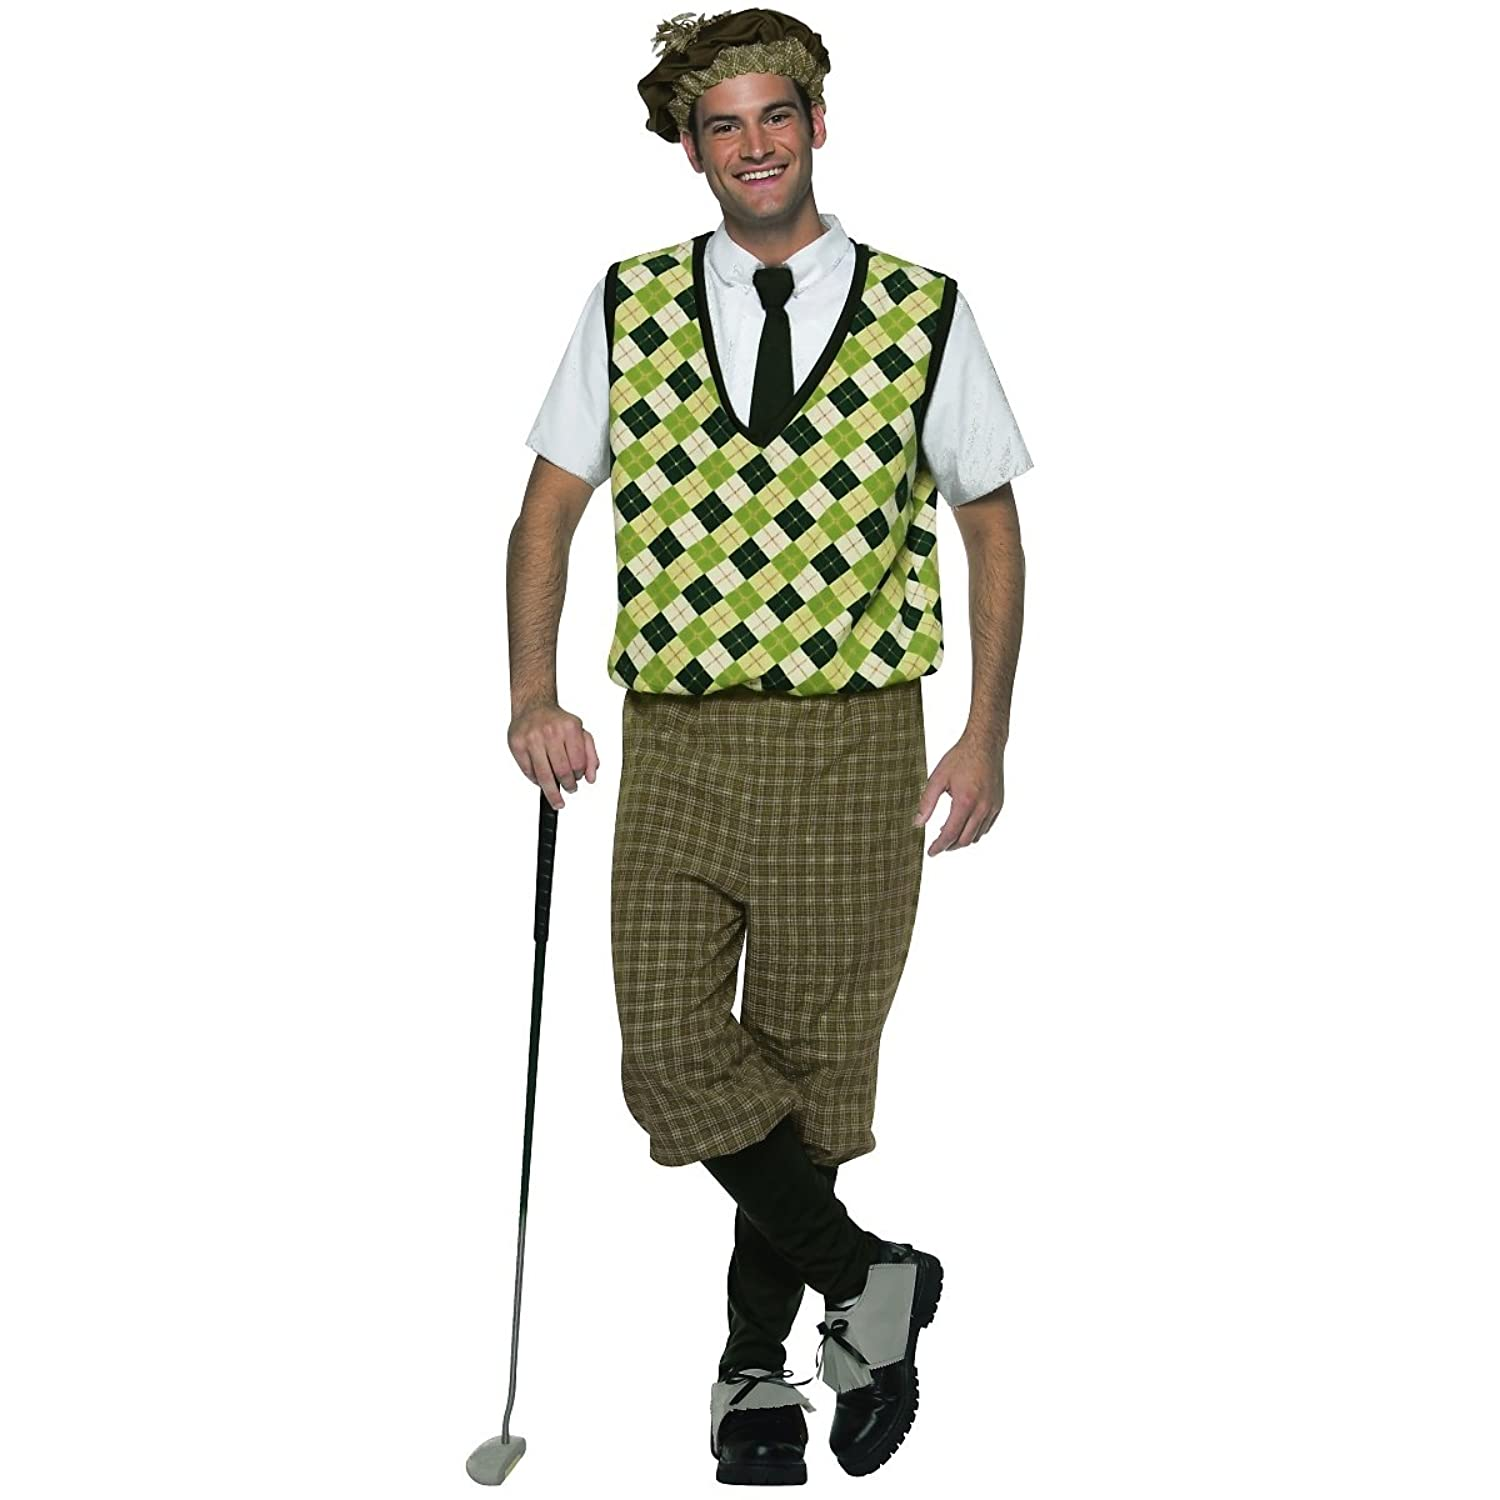 1930s Men's Costumes Original Old Tyme Golfer Adult Costume $50.00 AT vintagedancer.com